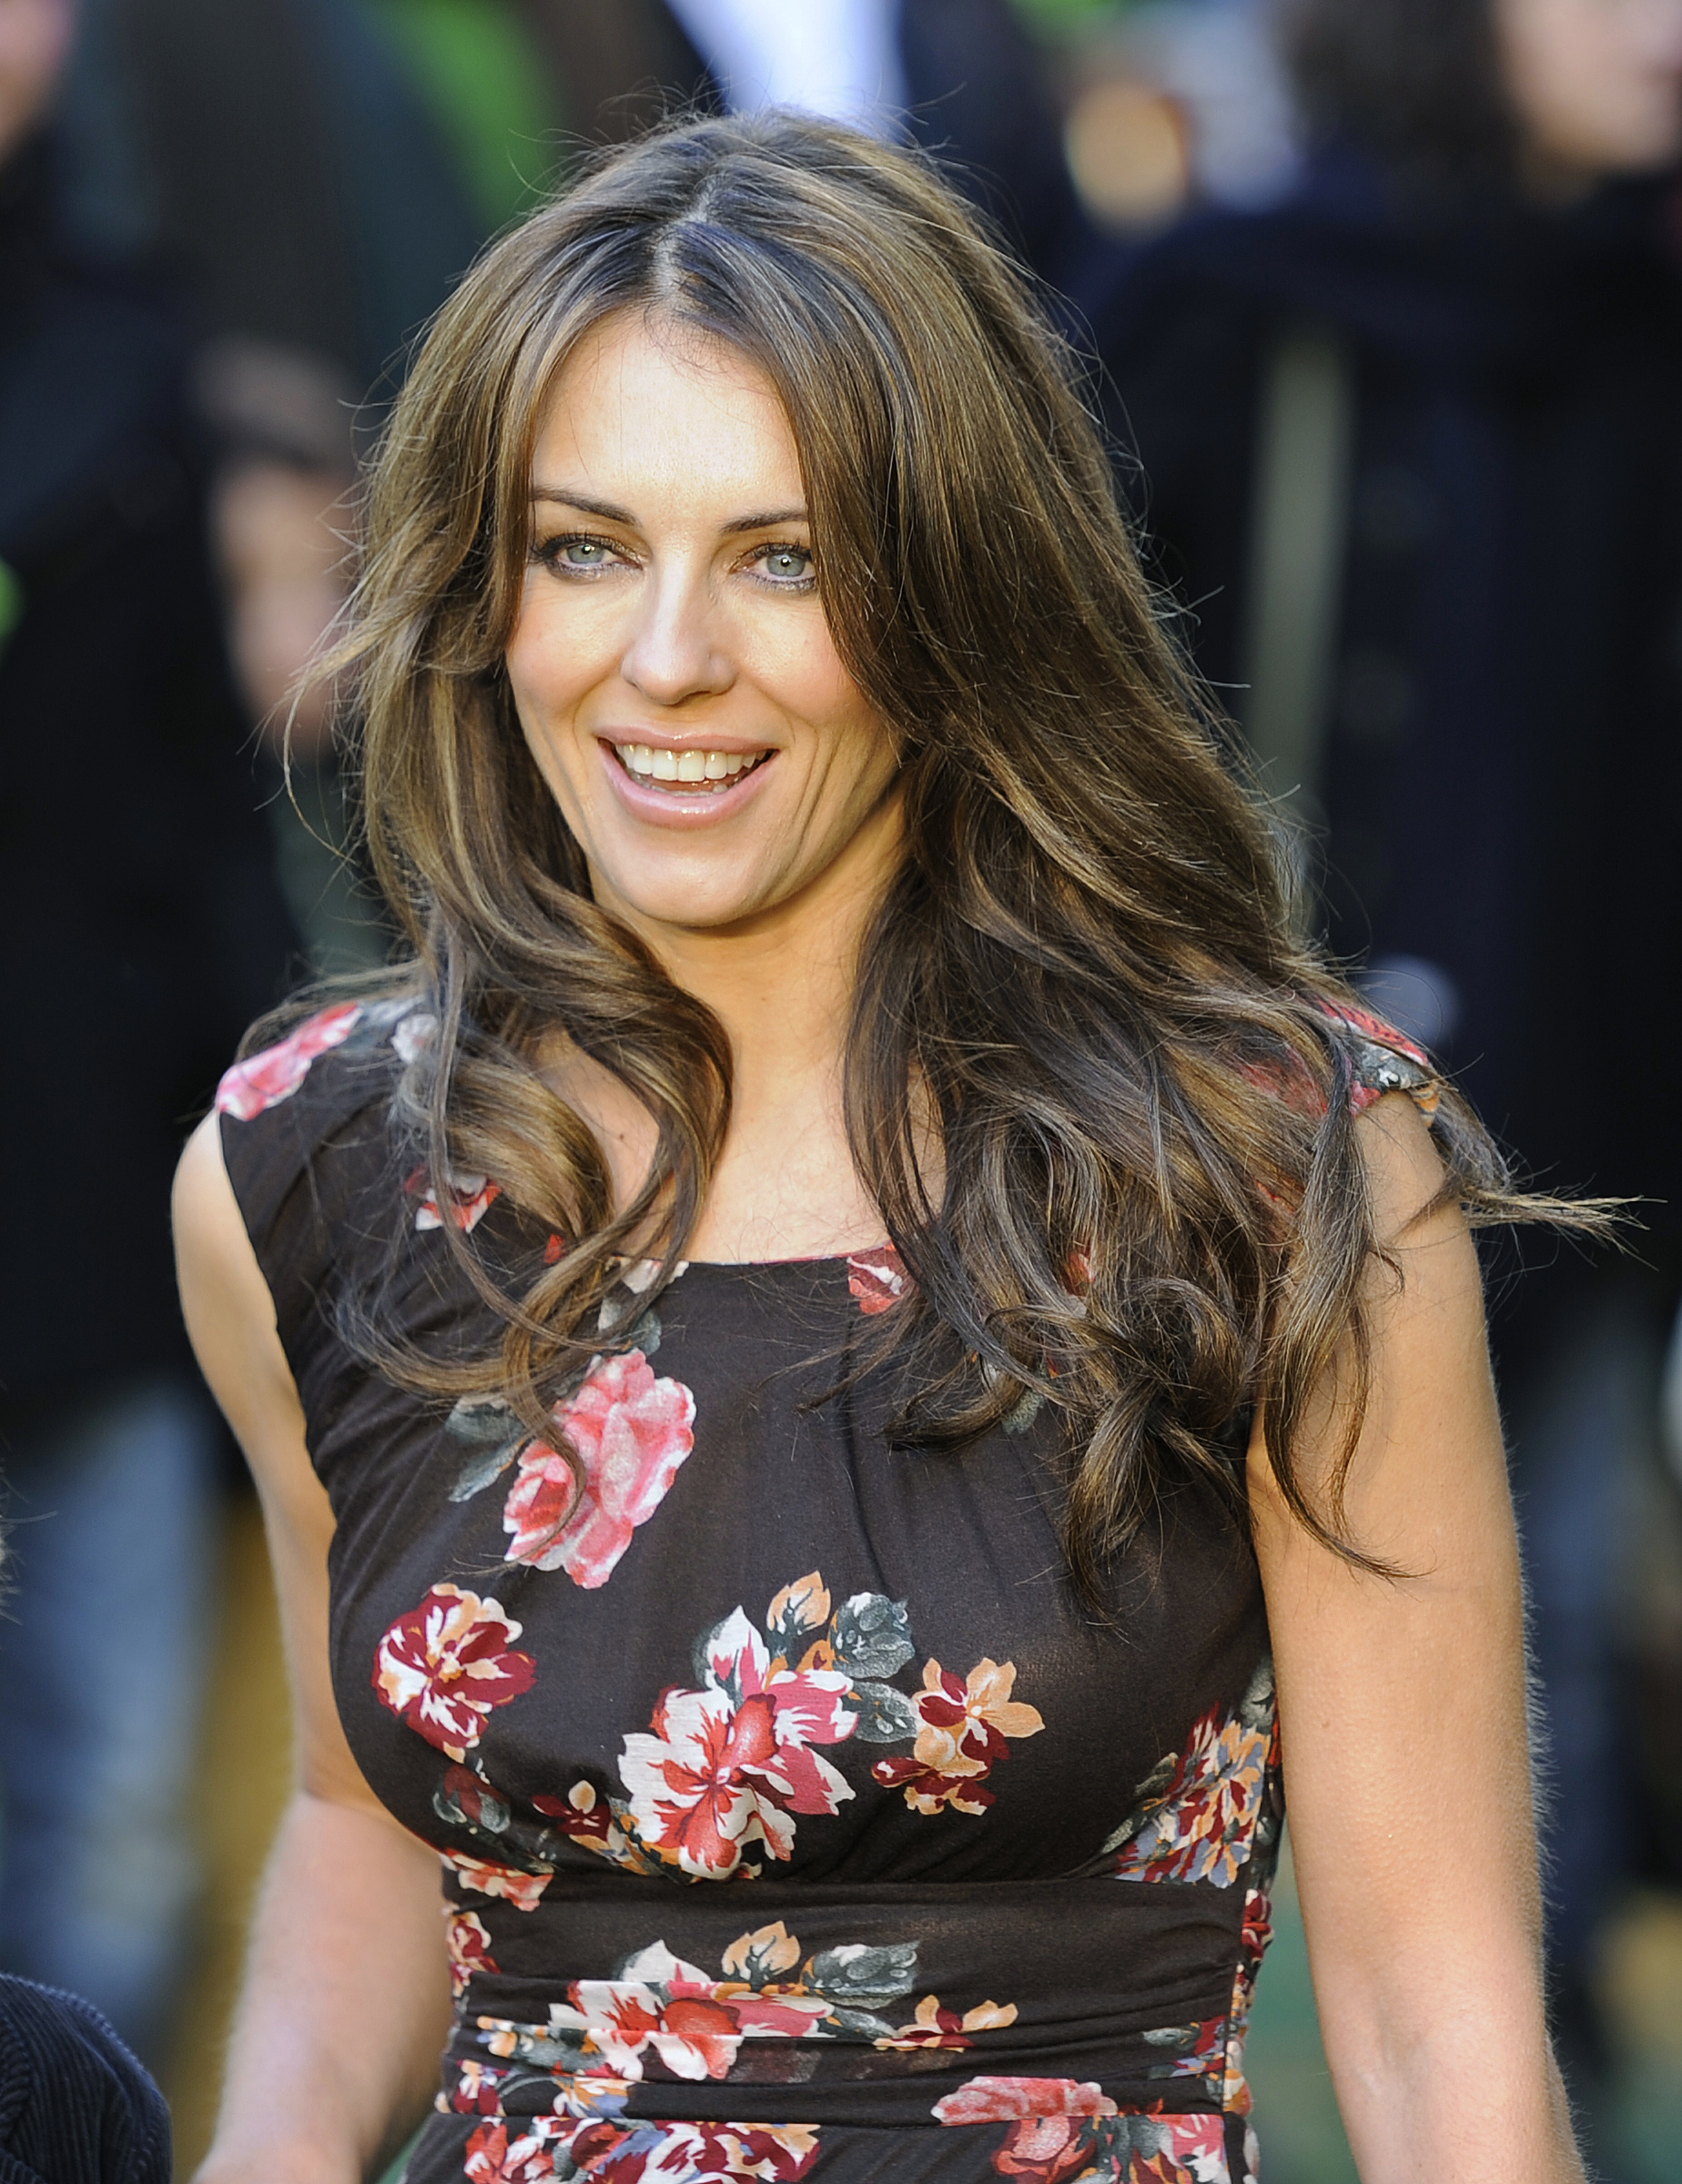 """British actress Elizabeth Hurley poses for photographers as she arrives for the British premiere of """"Gnomeo And Juliet"""" at Leicester Square in London January 30, 2011.    REUTERS/Paul Hackett  (BRITAIN - Tags: ENTERTAINMENT)"""